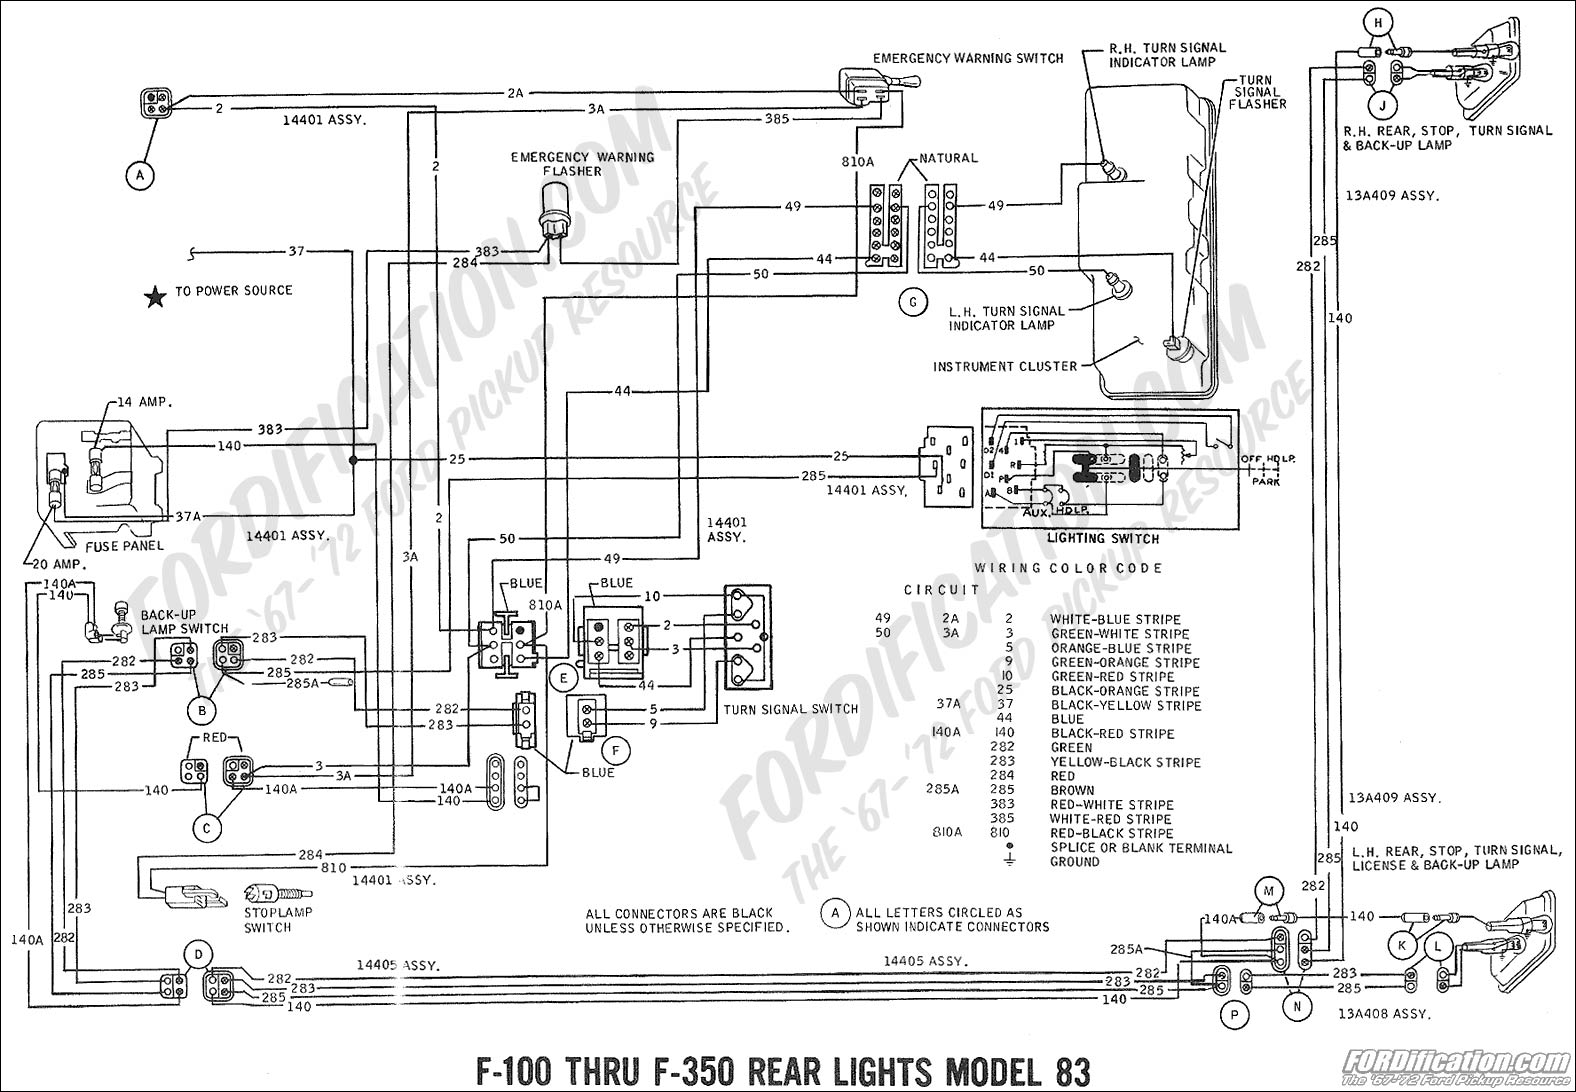 ford truck technical drawings and schematics section h wiring ford wiring schematic 1969 f 100, f 250 rear lights (model 83) 02